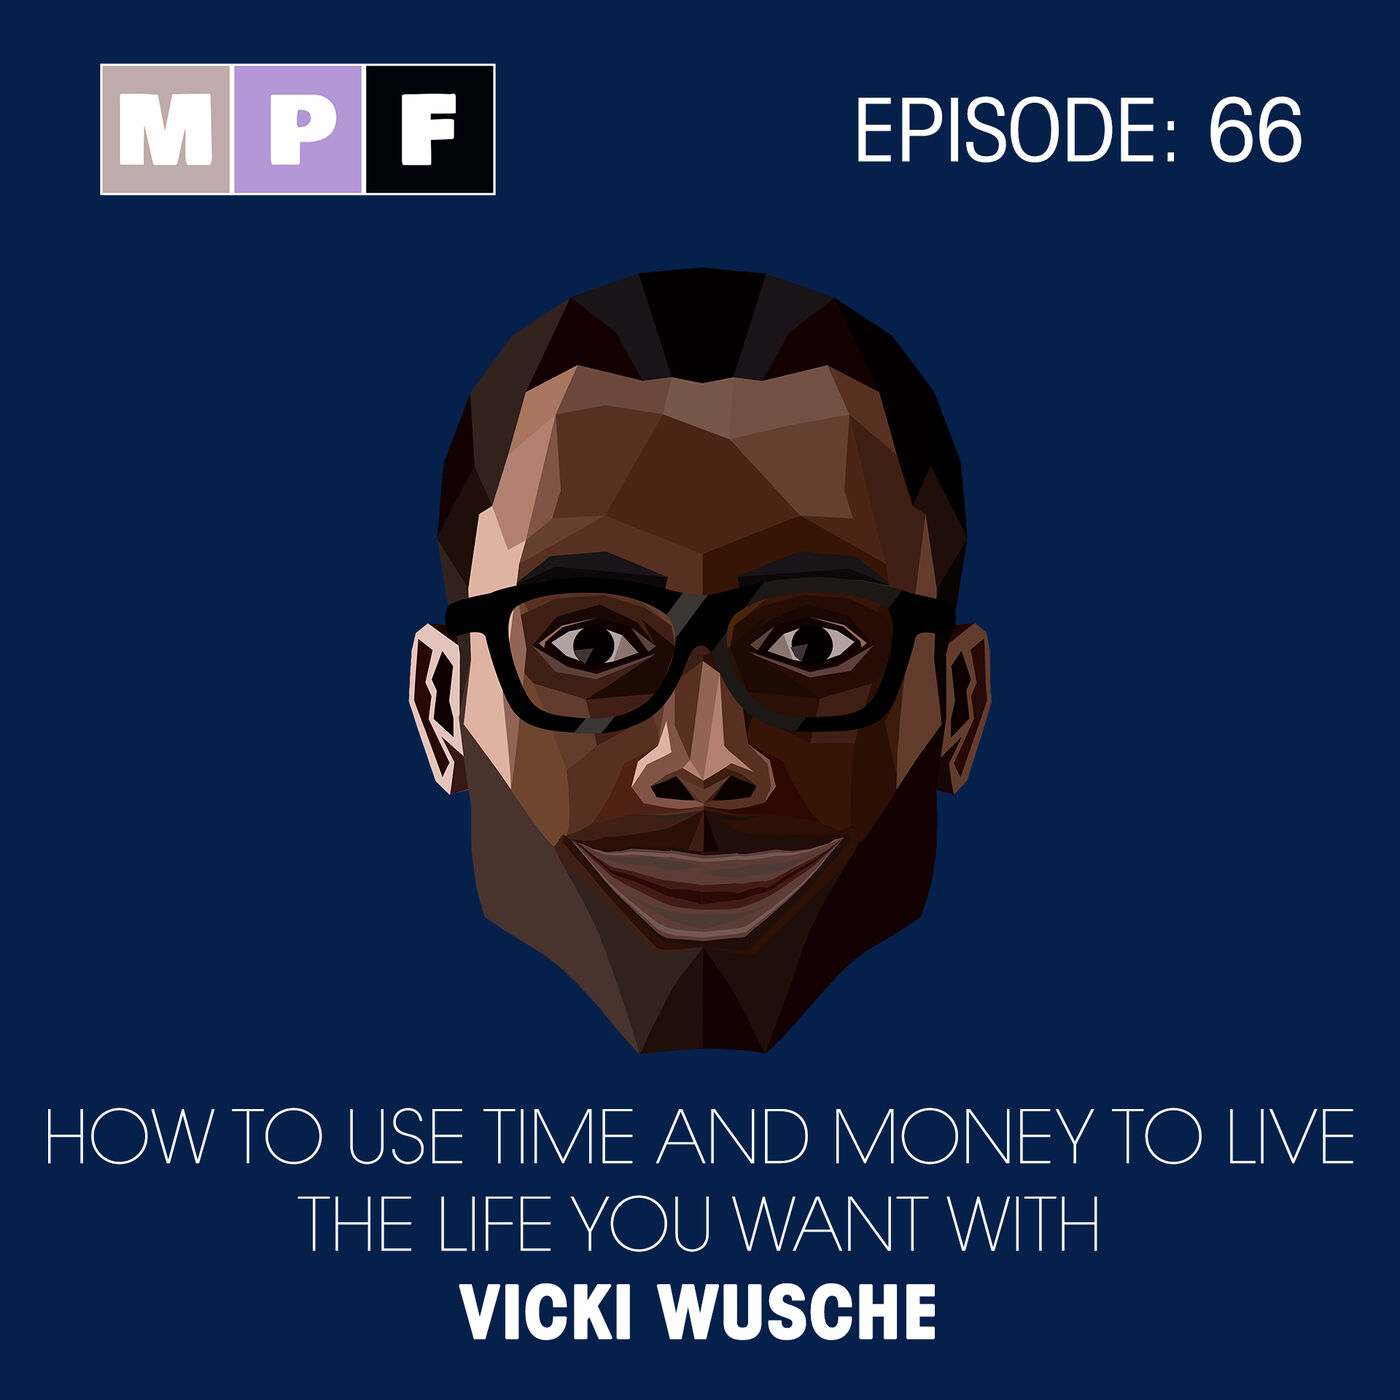 How To Use Time and Money to Live the Life you want with Vicki Wusche